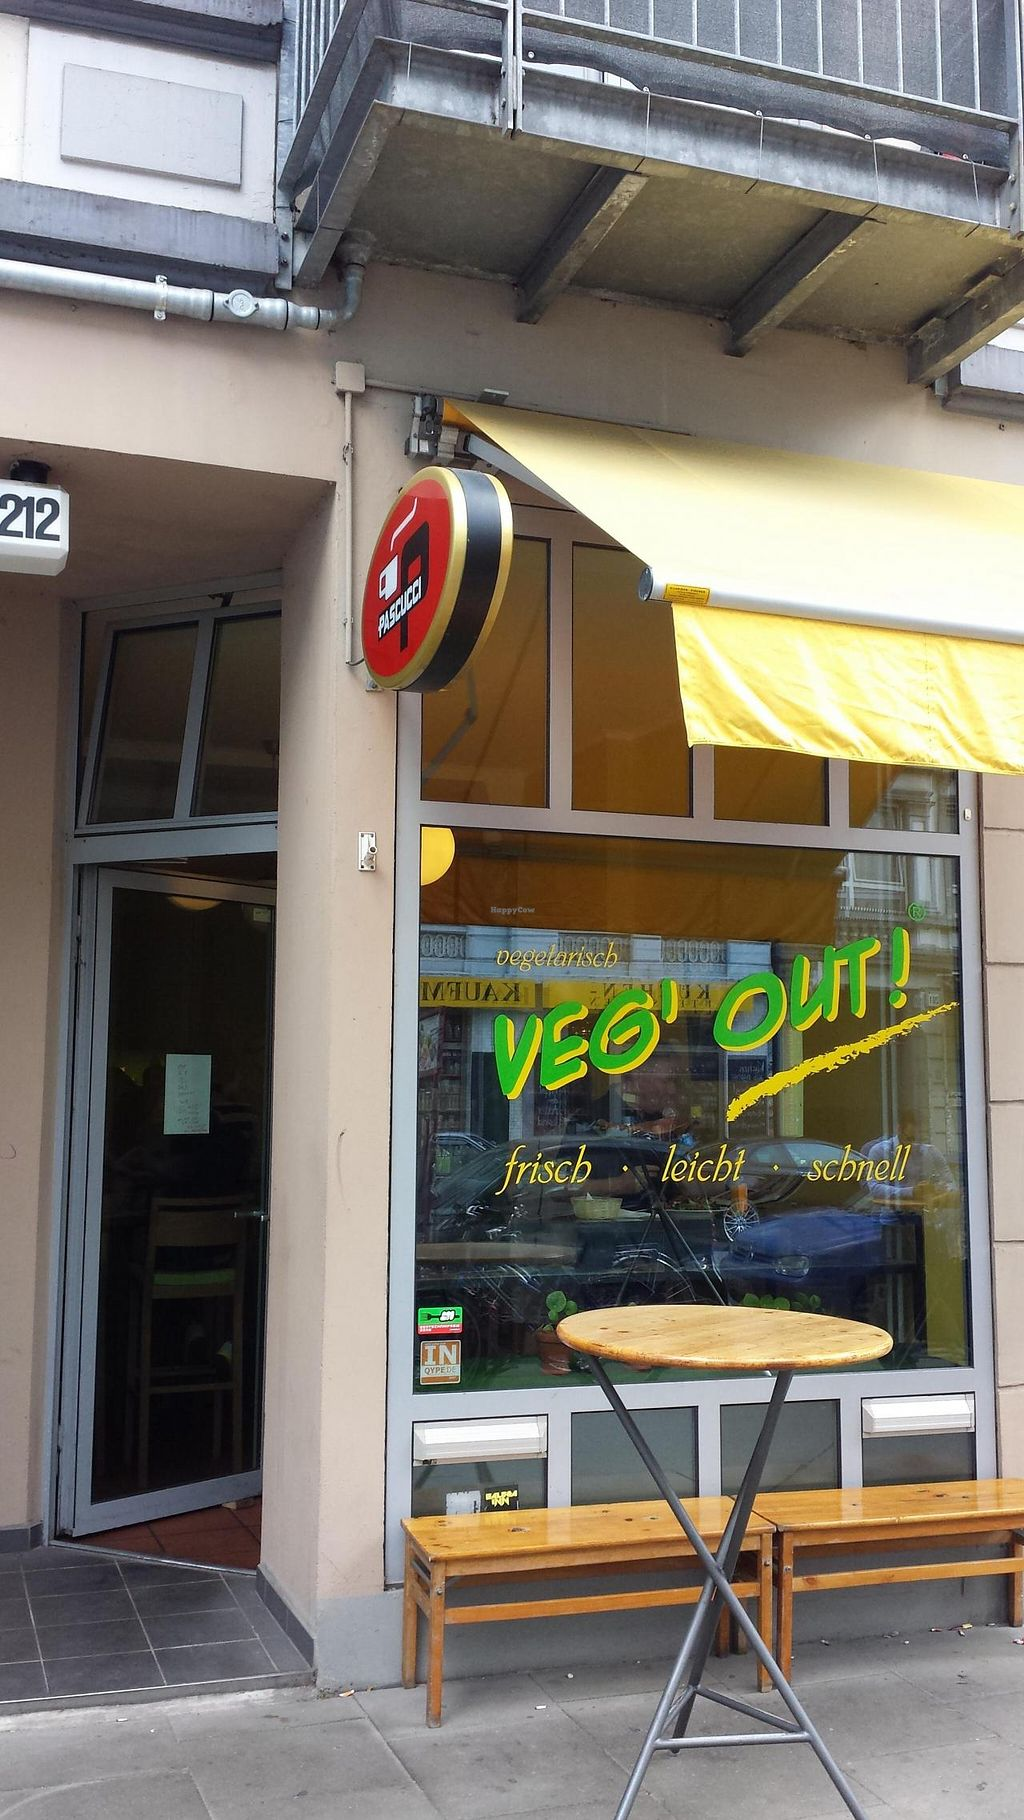 "Photo of CLOSED: Veg Out  by <a href=""/members/profile/bercher"">bercher</a> <br/>Restaurant front <br/> August 1, 2014  - <a href='/contact/abuse/image/17902/75762'>Report</a>"